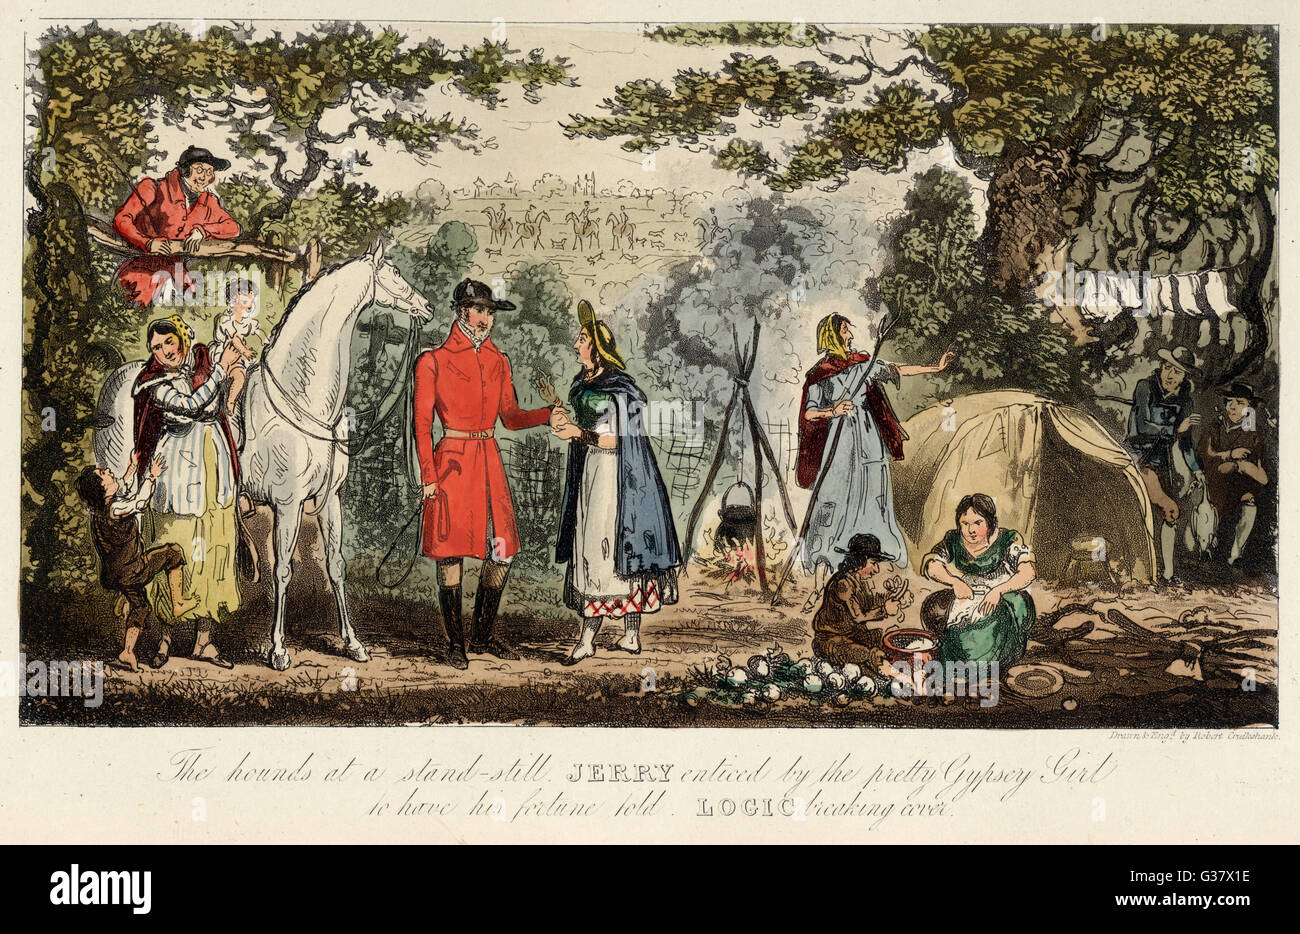 Foxhunters encounter an encampment of gipsies        Date: 1828 - Stock Image